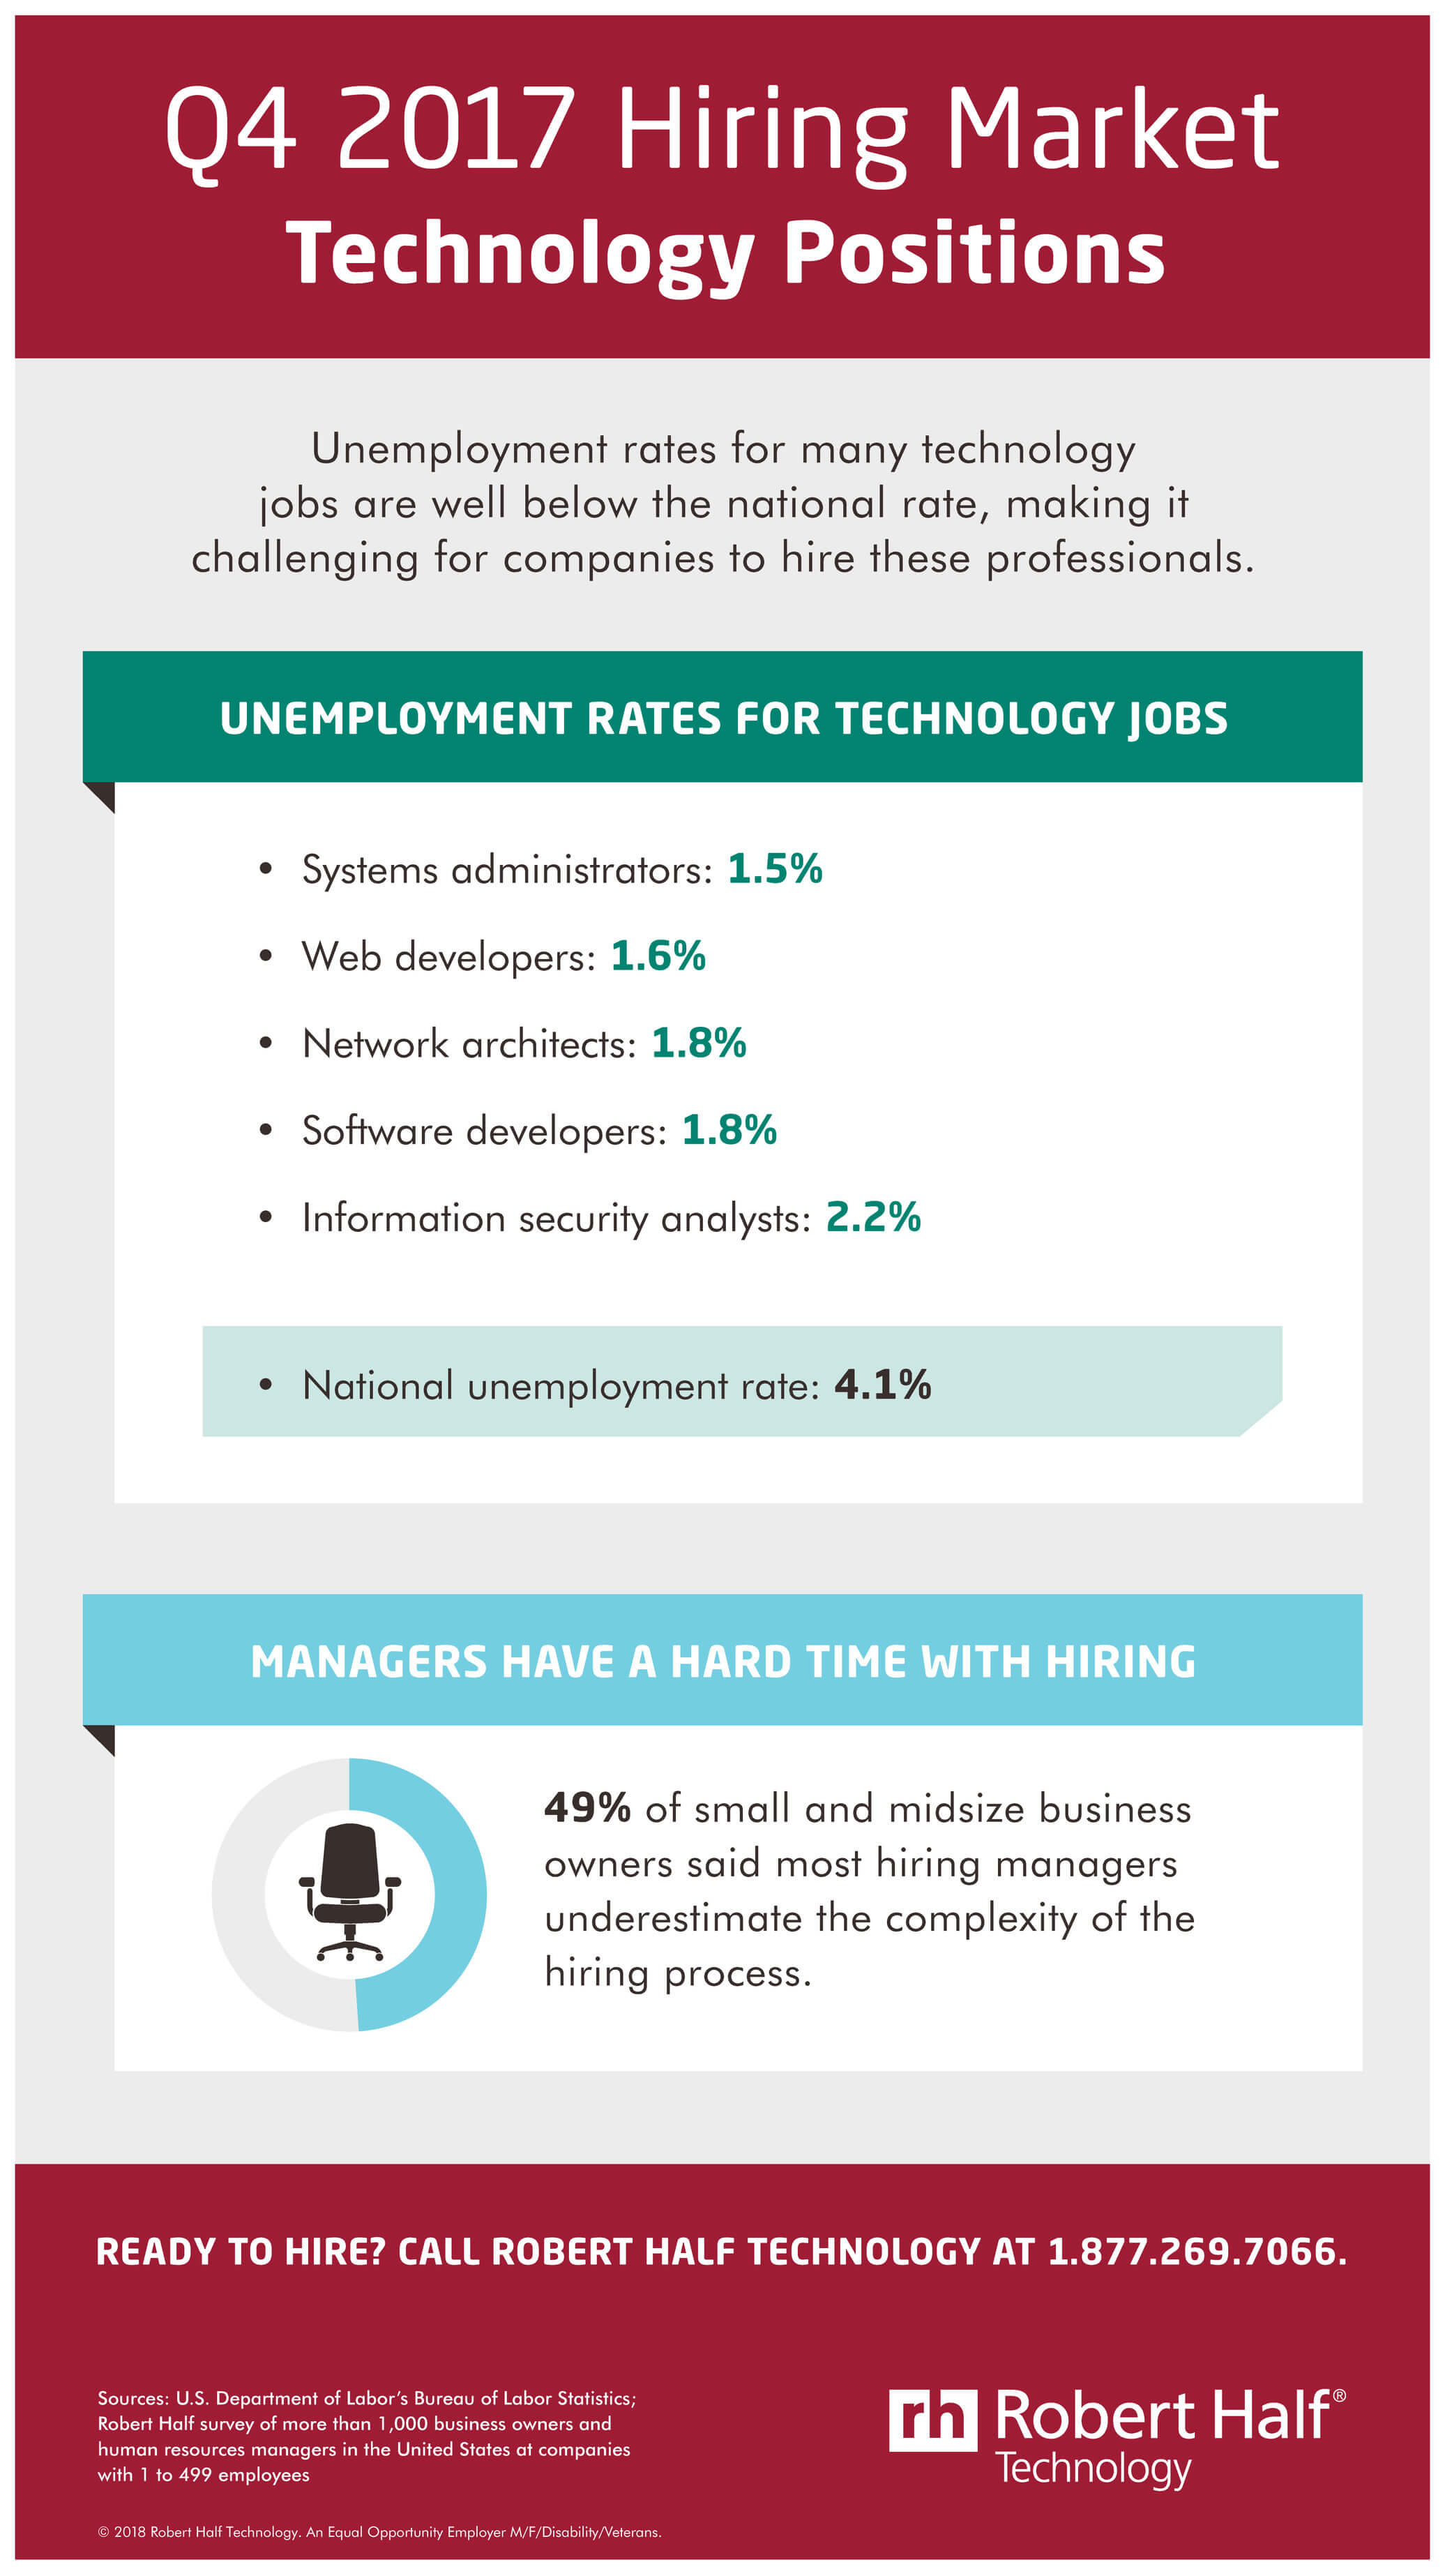 Q4 Hiring Market For Technology Positions